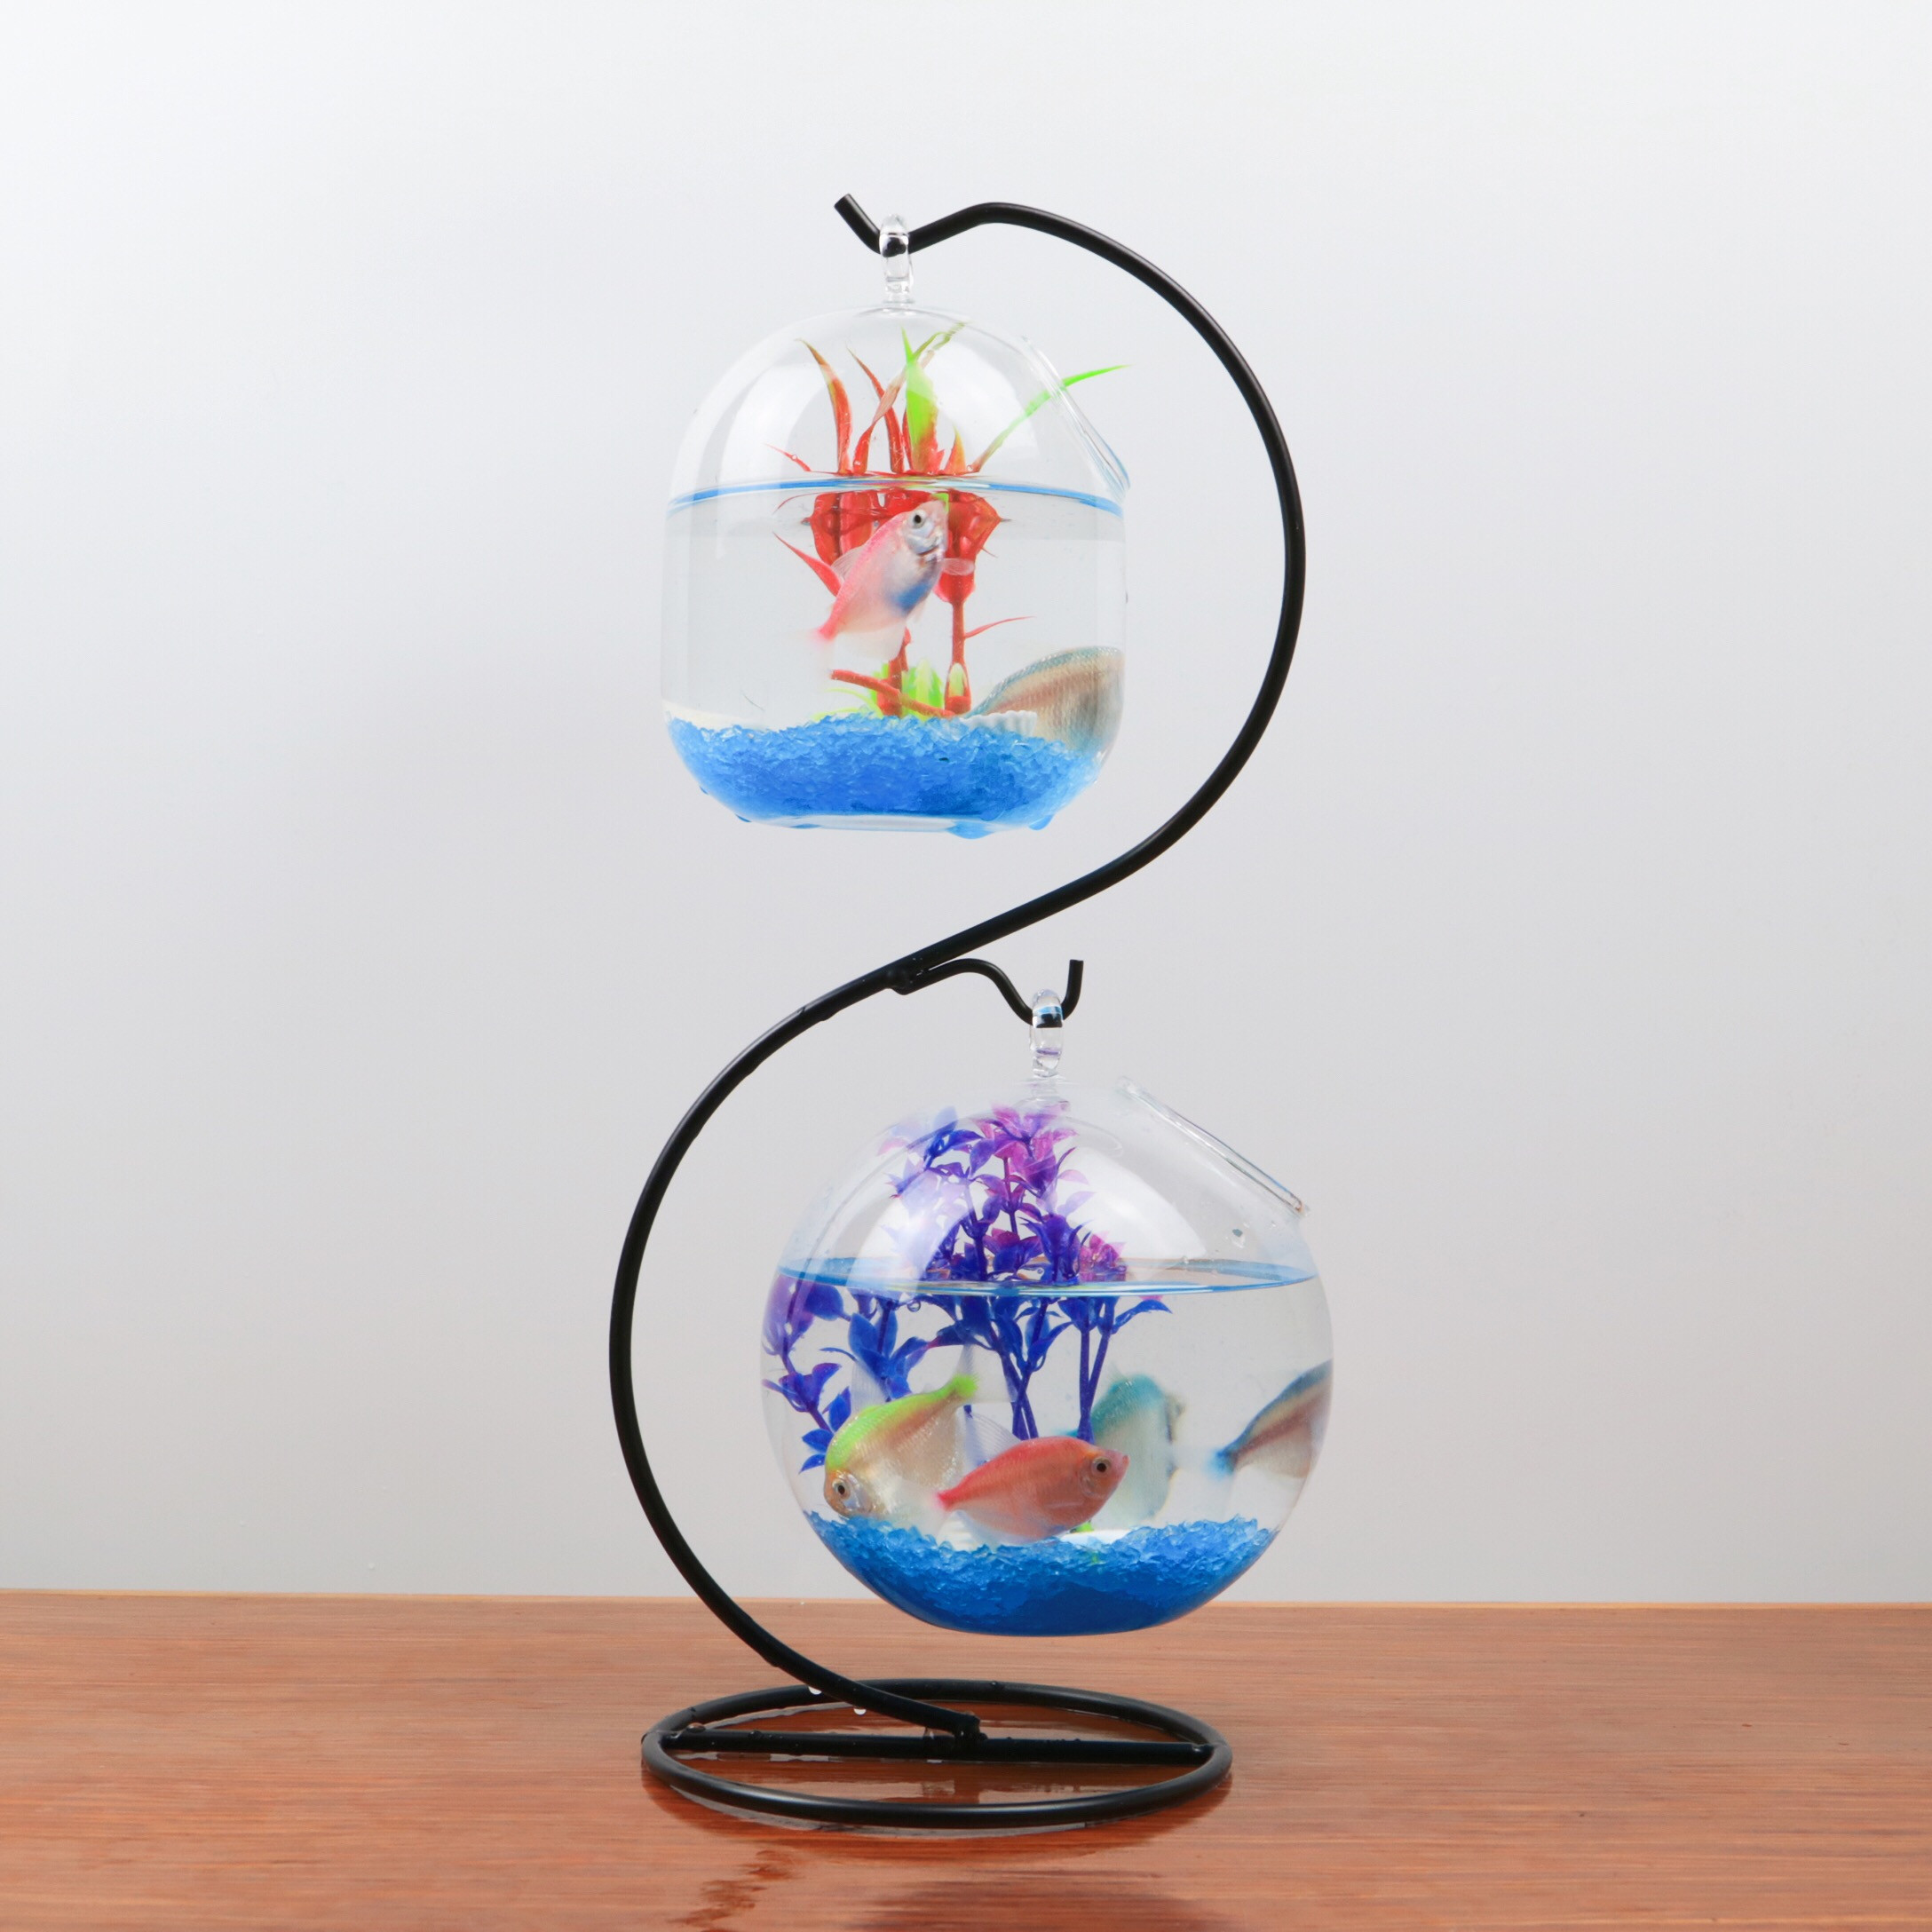 clear glass fish shaped vase of usd 6 39 creative home decoration hanging desk bucket noodle fish intended for iron frame big winter melon 12 cm fish tank double hook iron frame size winter melon fish tank s type iron frame 12 small winter melon fish tank